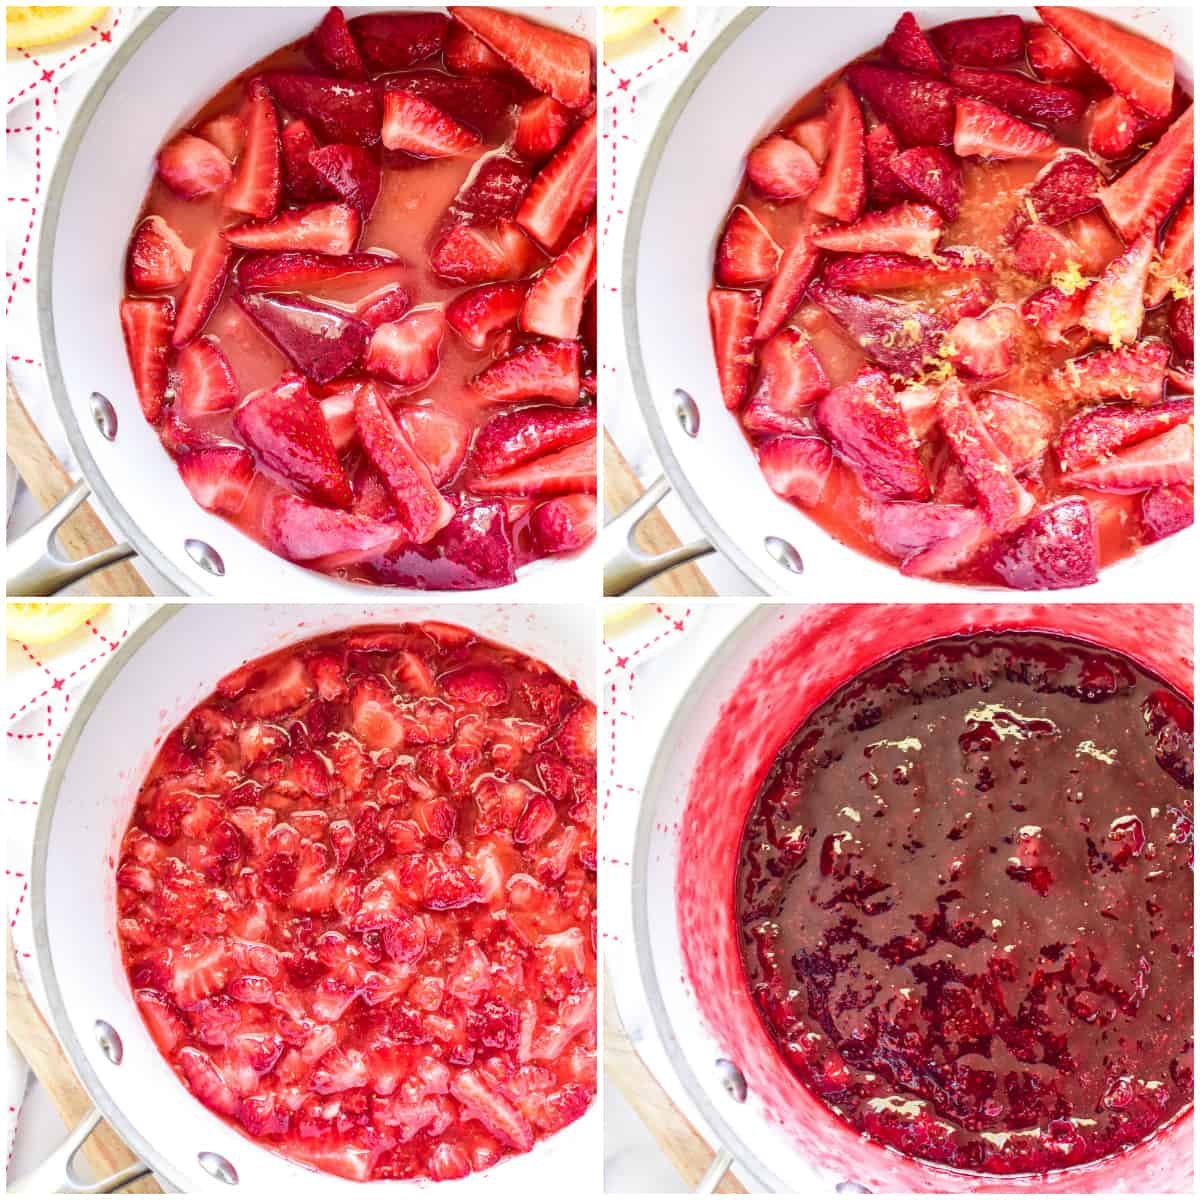 Step by step photos of Strawberry Jam cooking in pan